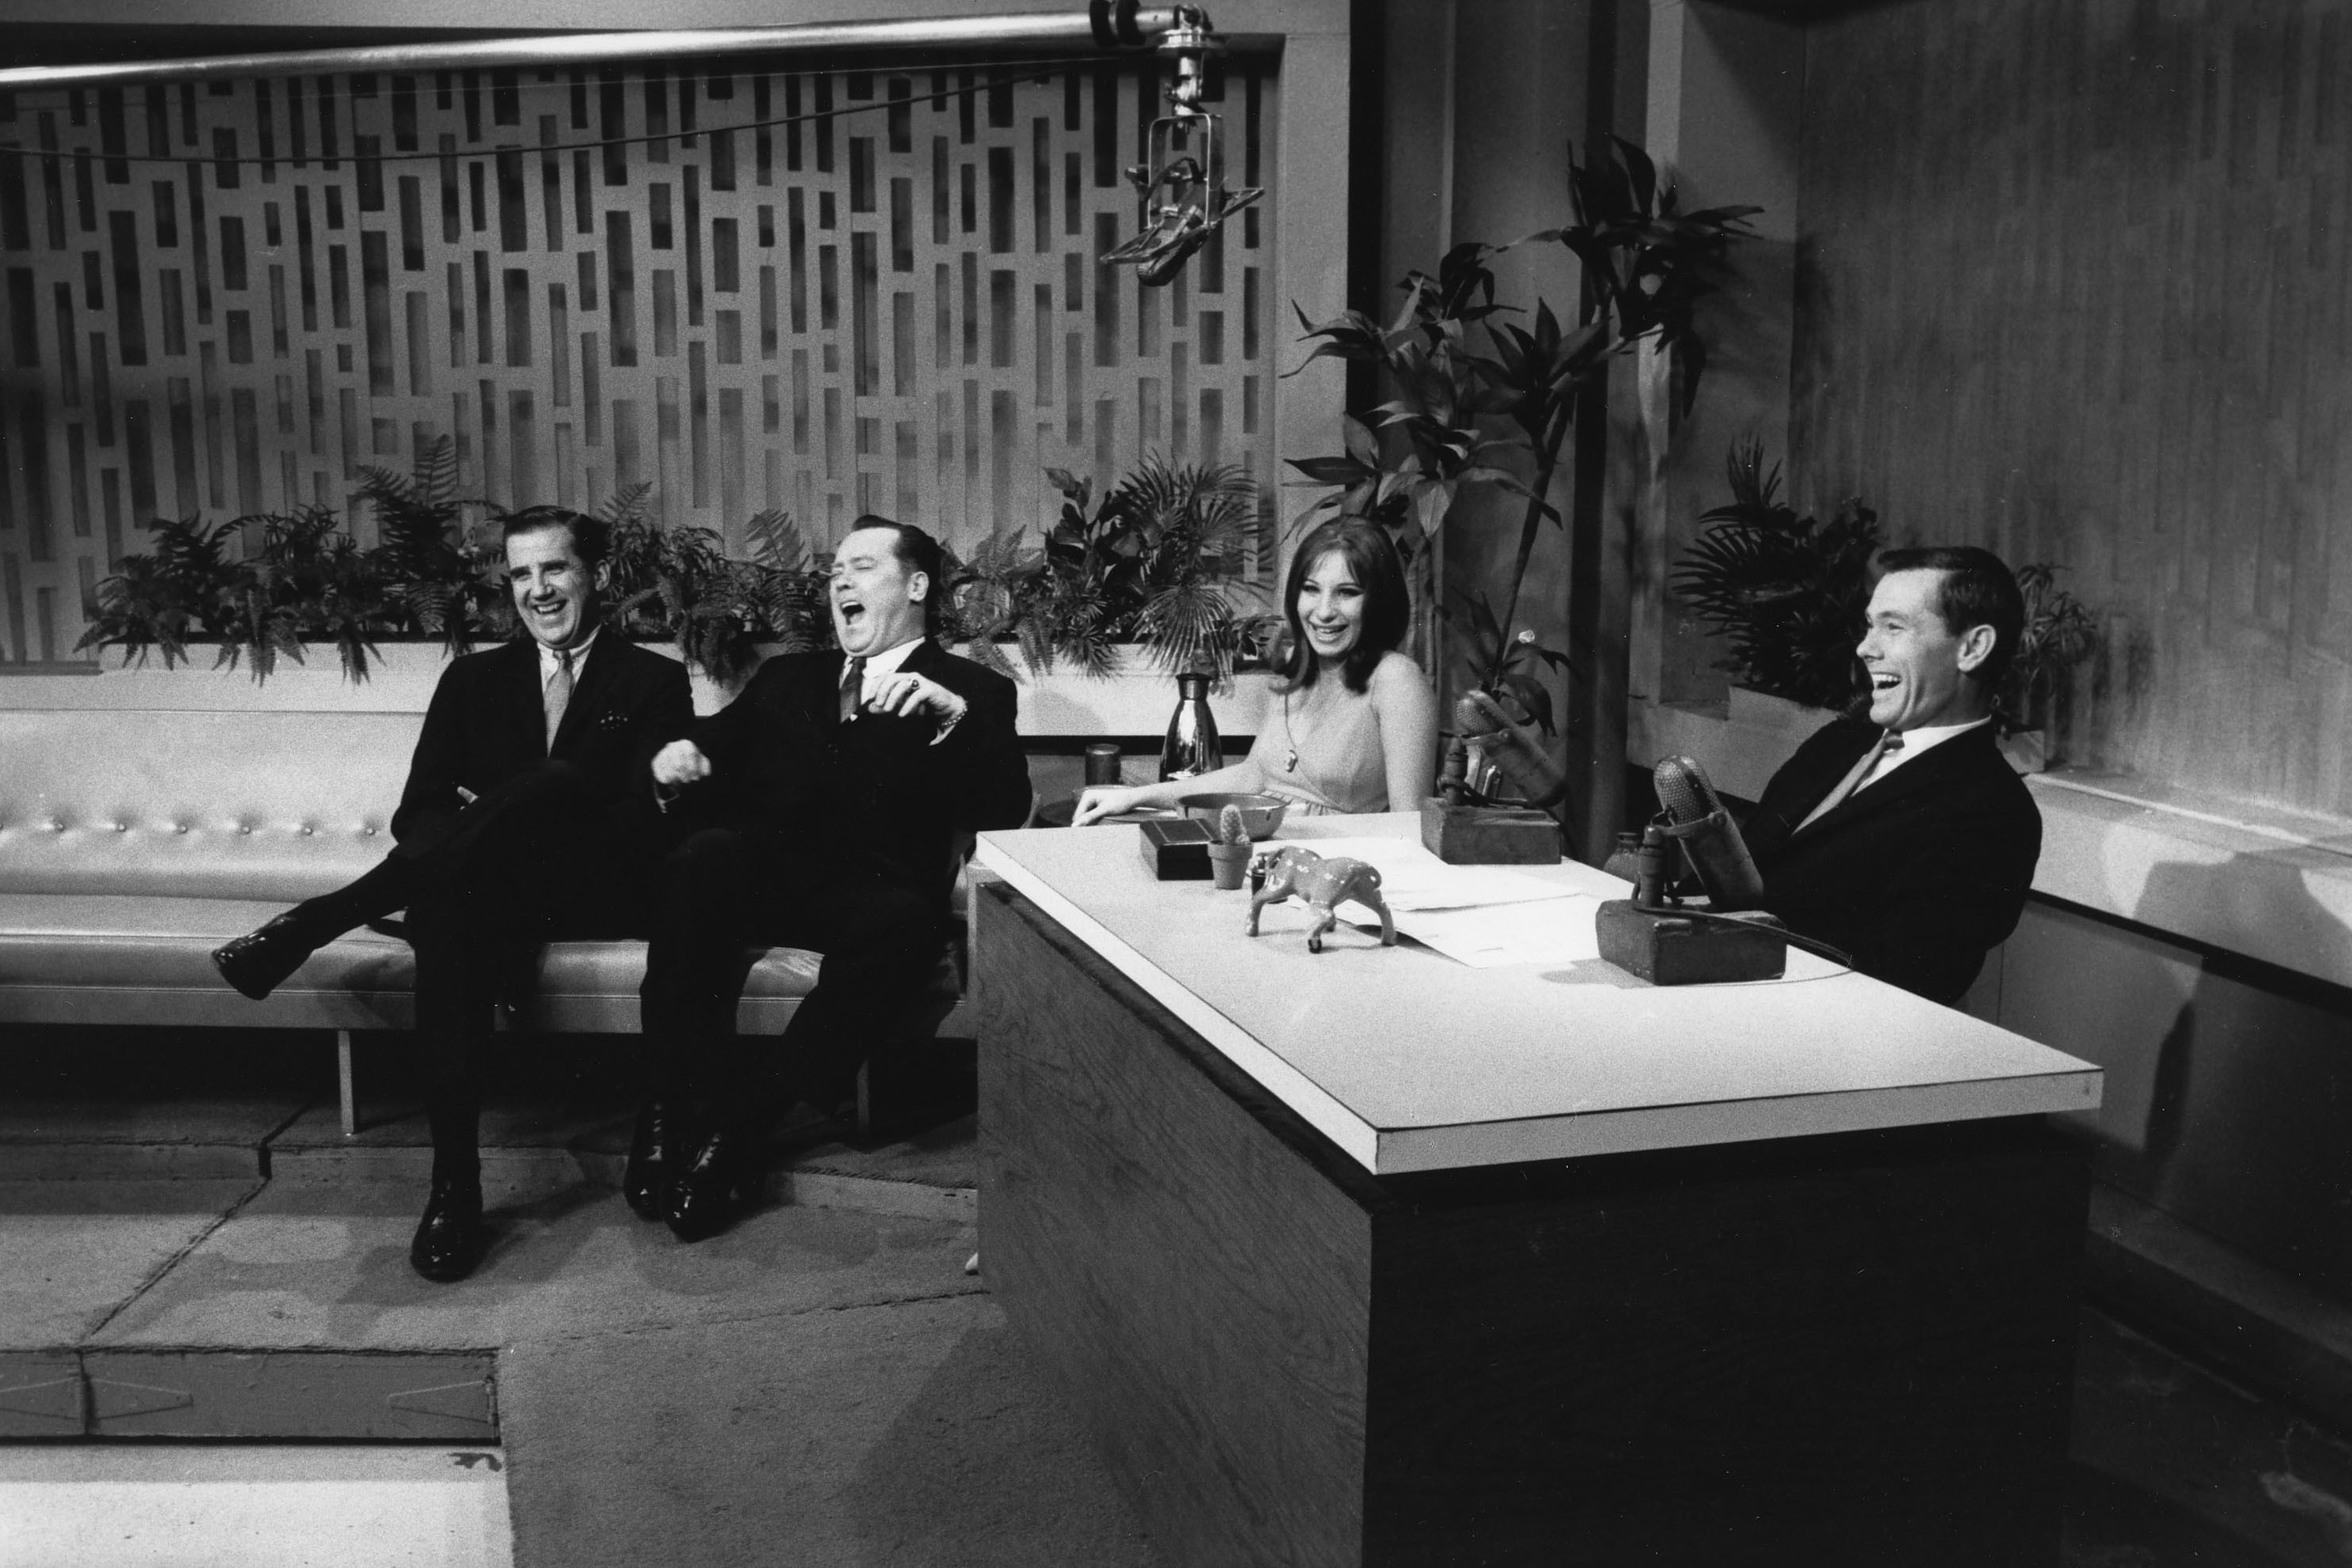 Ed McMahon (from left), an unidentified man, Barbra Streisand and Johnny Carson on The Tonight Show, New York City, 1964.